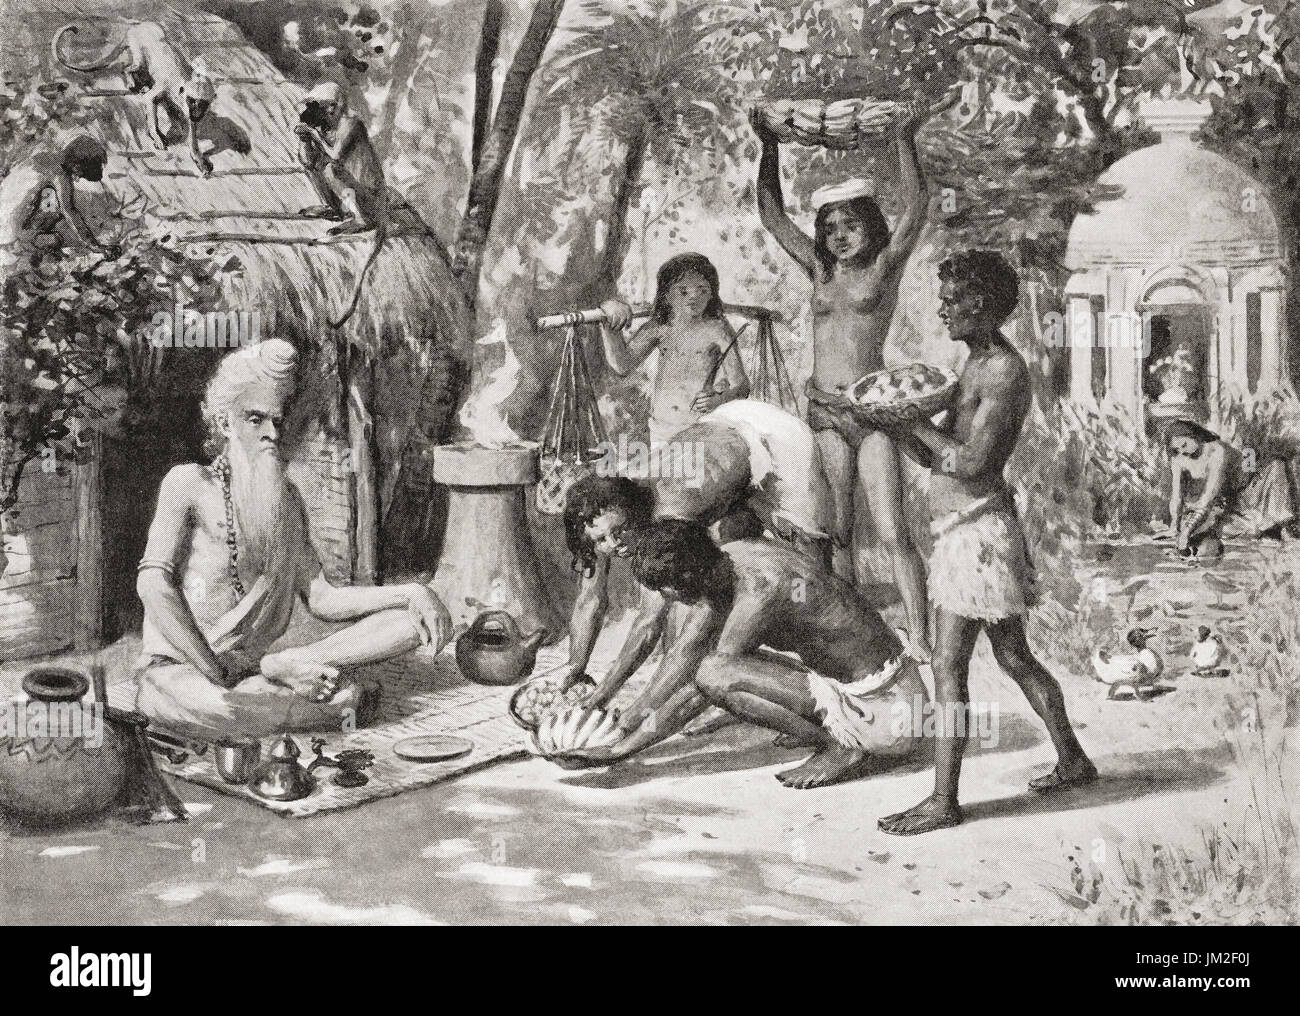 A hermit in ancient India seen here being brought food by the younger generation.  From Hutchinson's History of the Nations, published 1915. - Stock Image